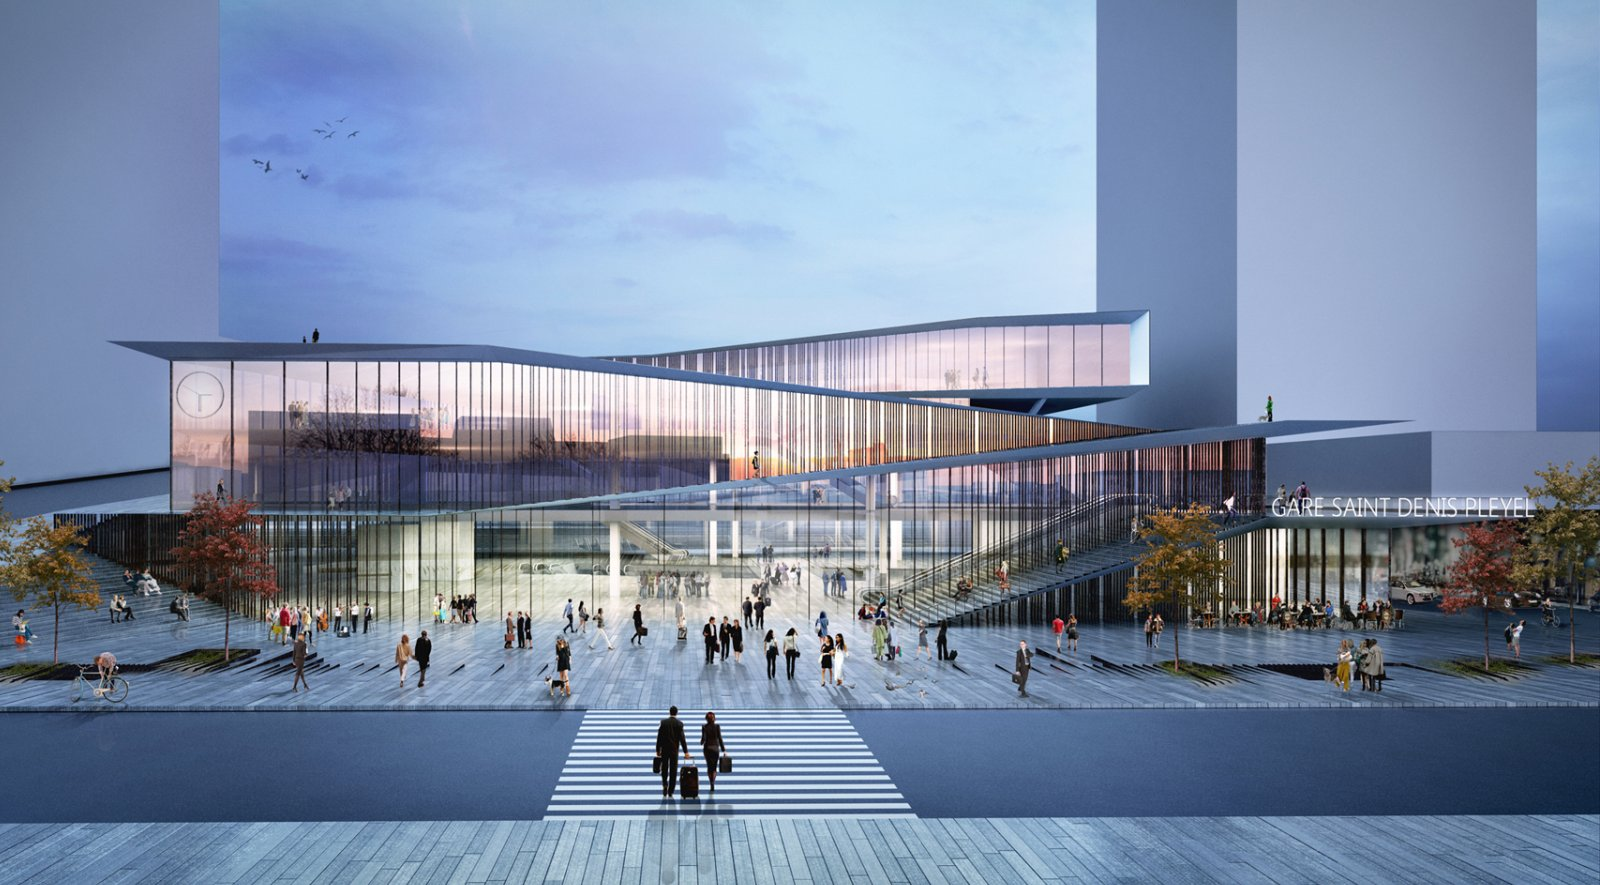 Saint denis pleyel emblematic train station by kengo kuma for Architecture 00